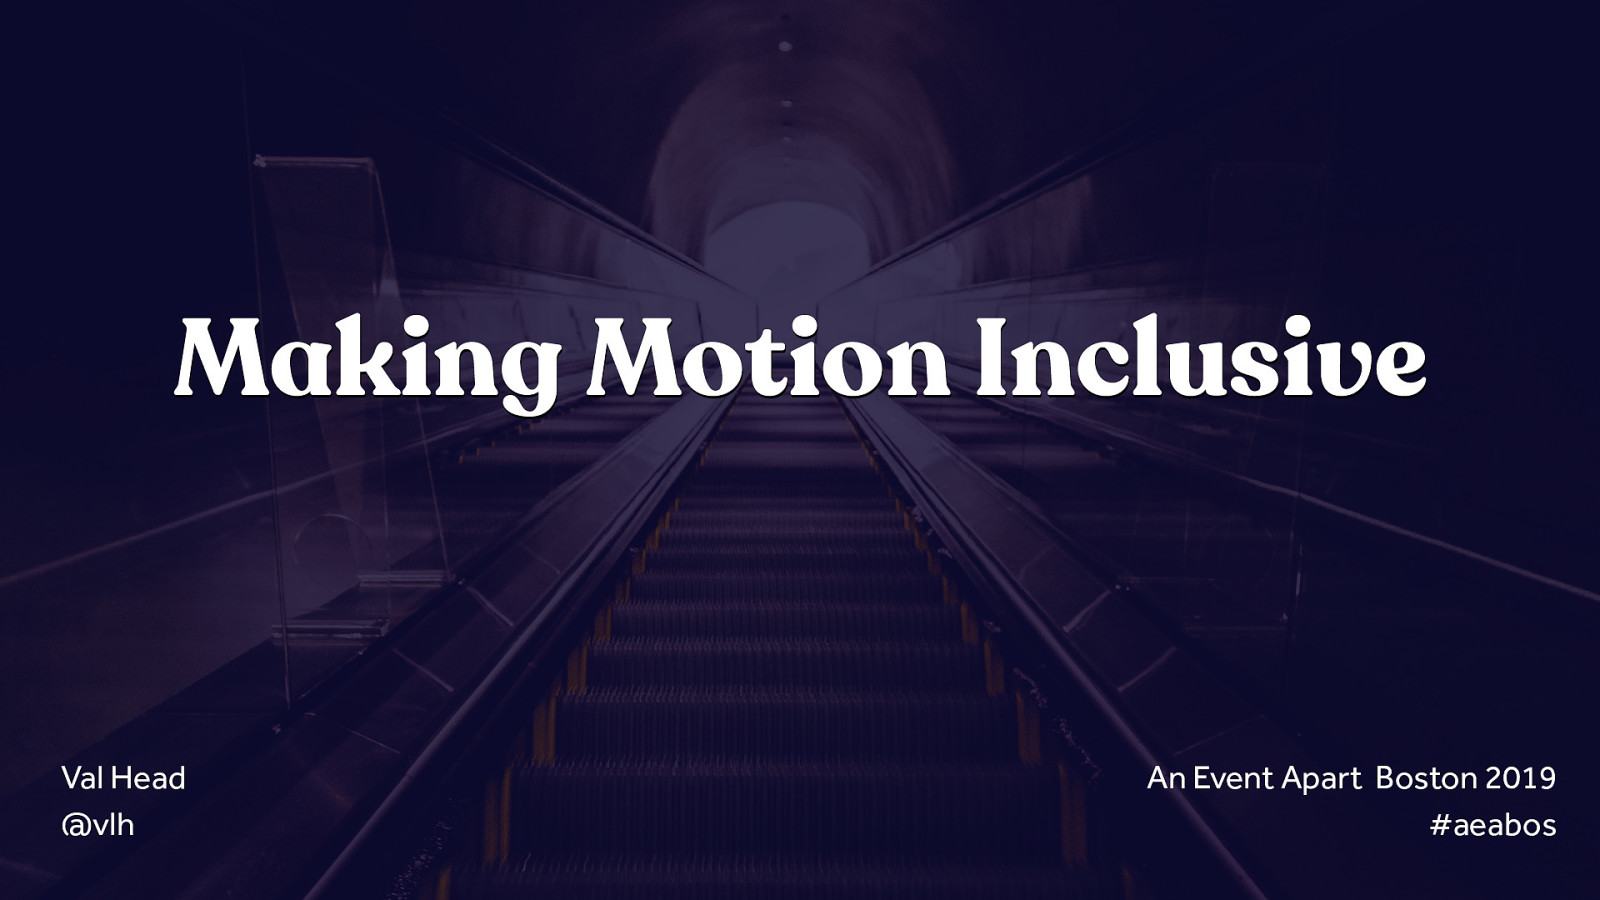 Making Motion Inclusive